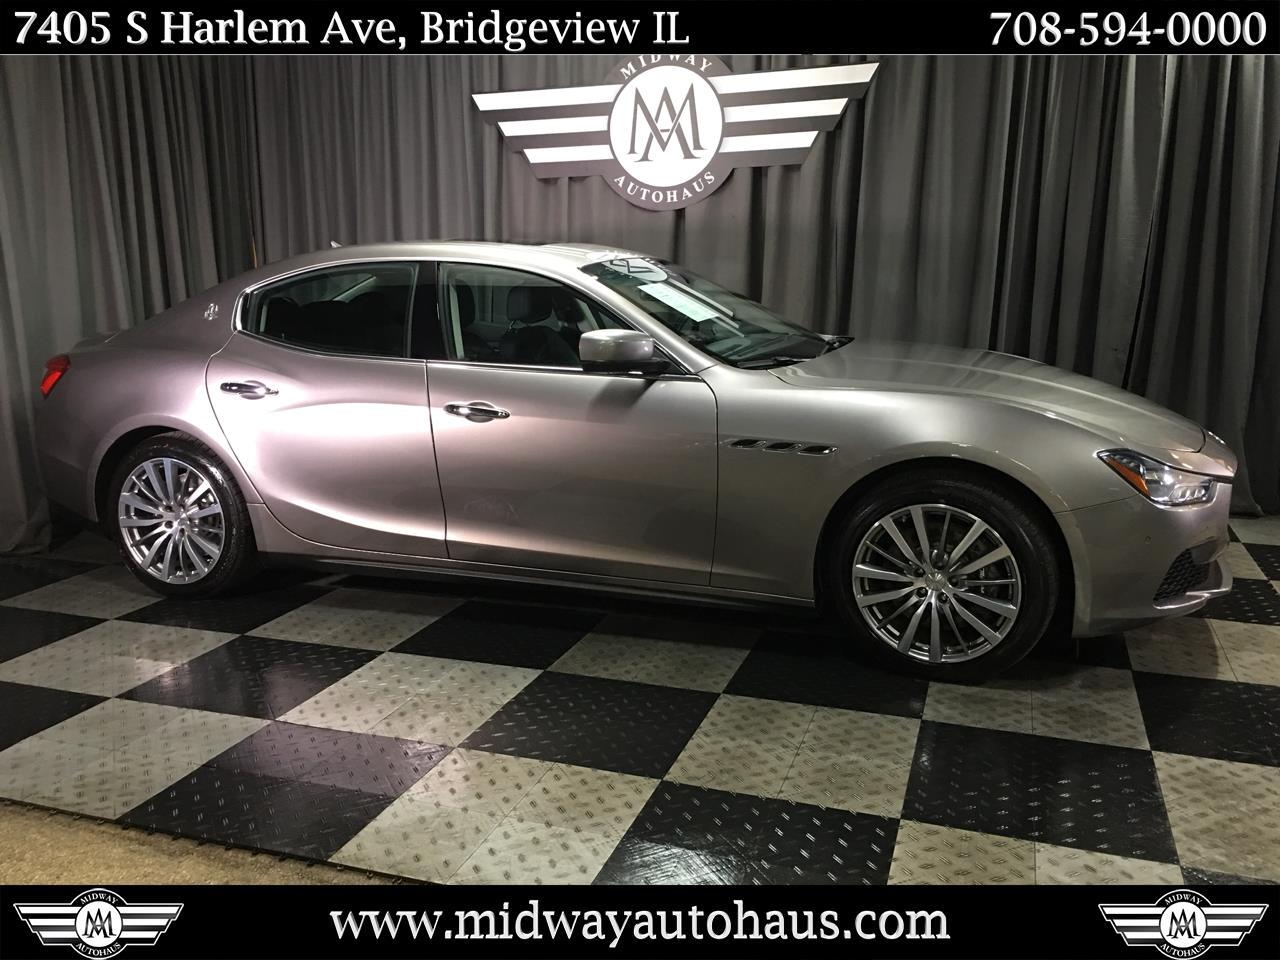 Used Maserati Ghibli Bridgeview Il